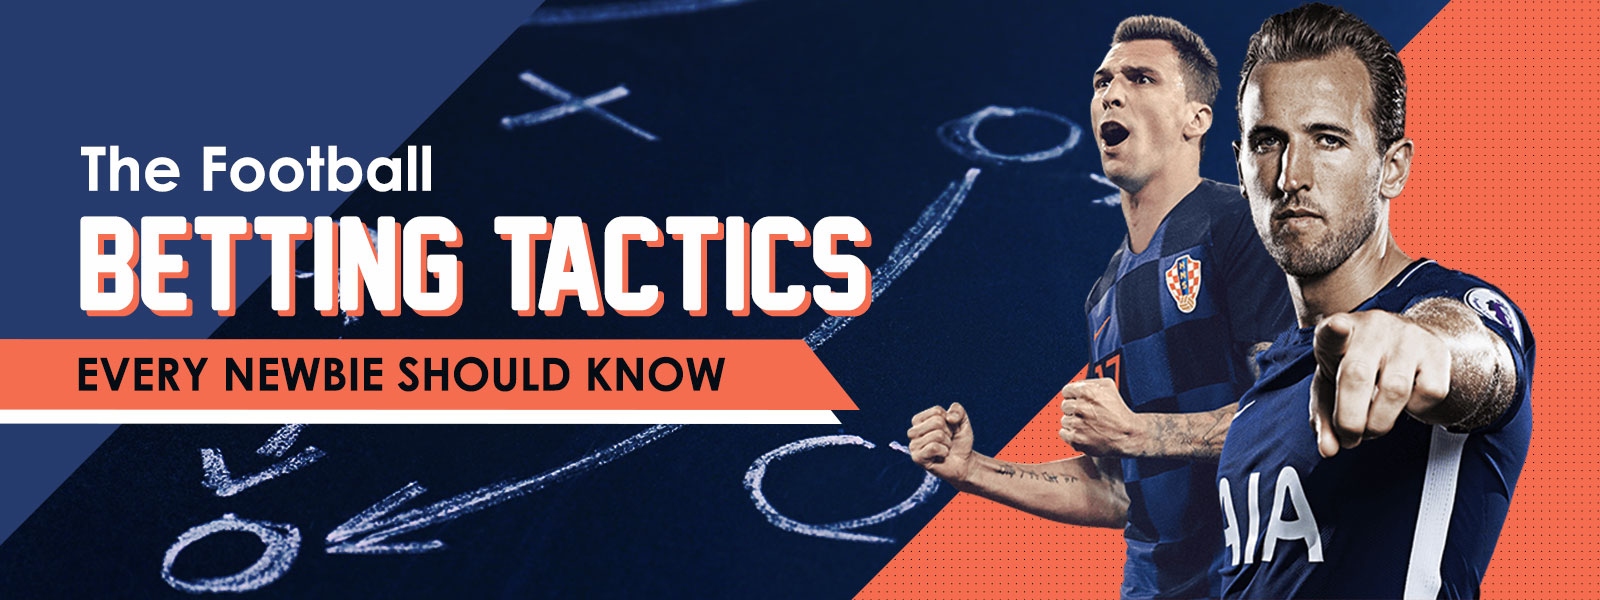 The Football Betting Tactics Every Newbie Should Know